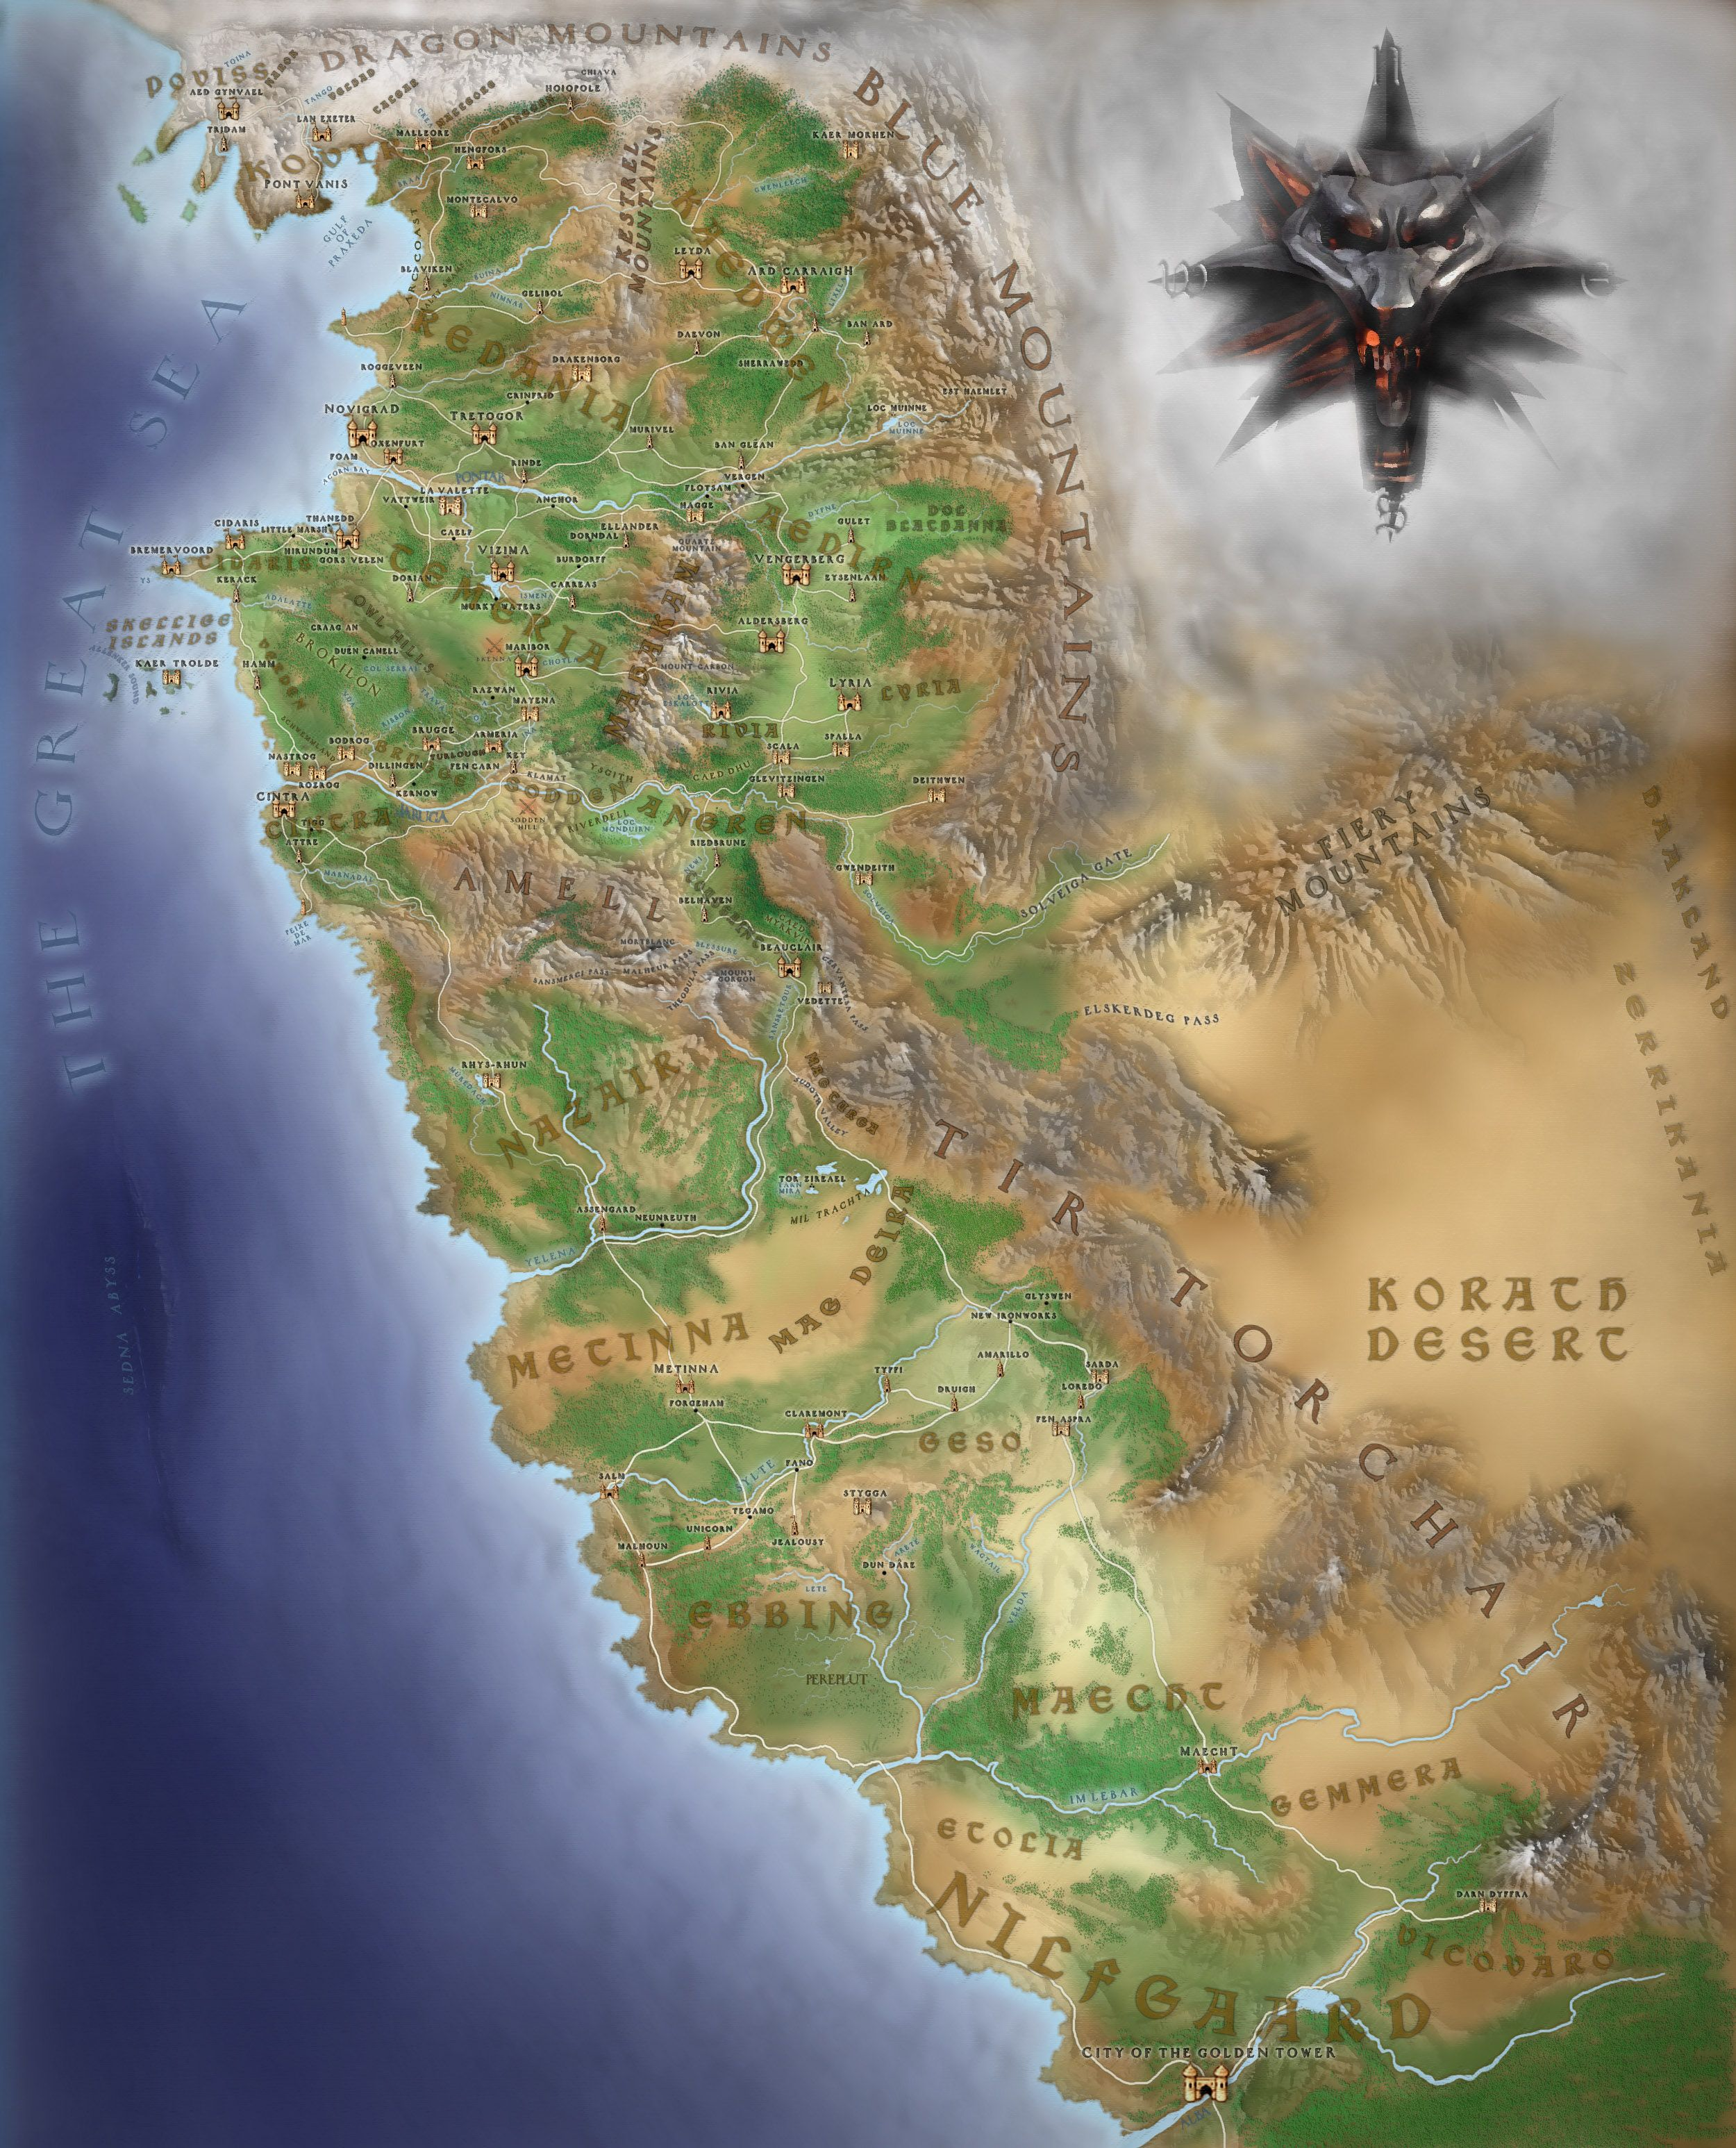 「the witcher continent map」的圖片搜尋結果